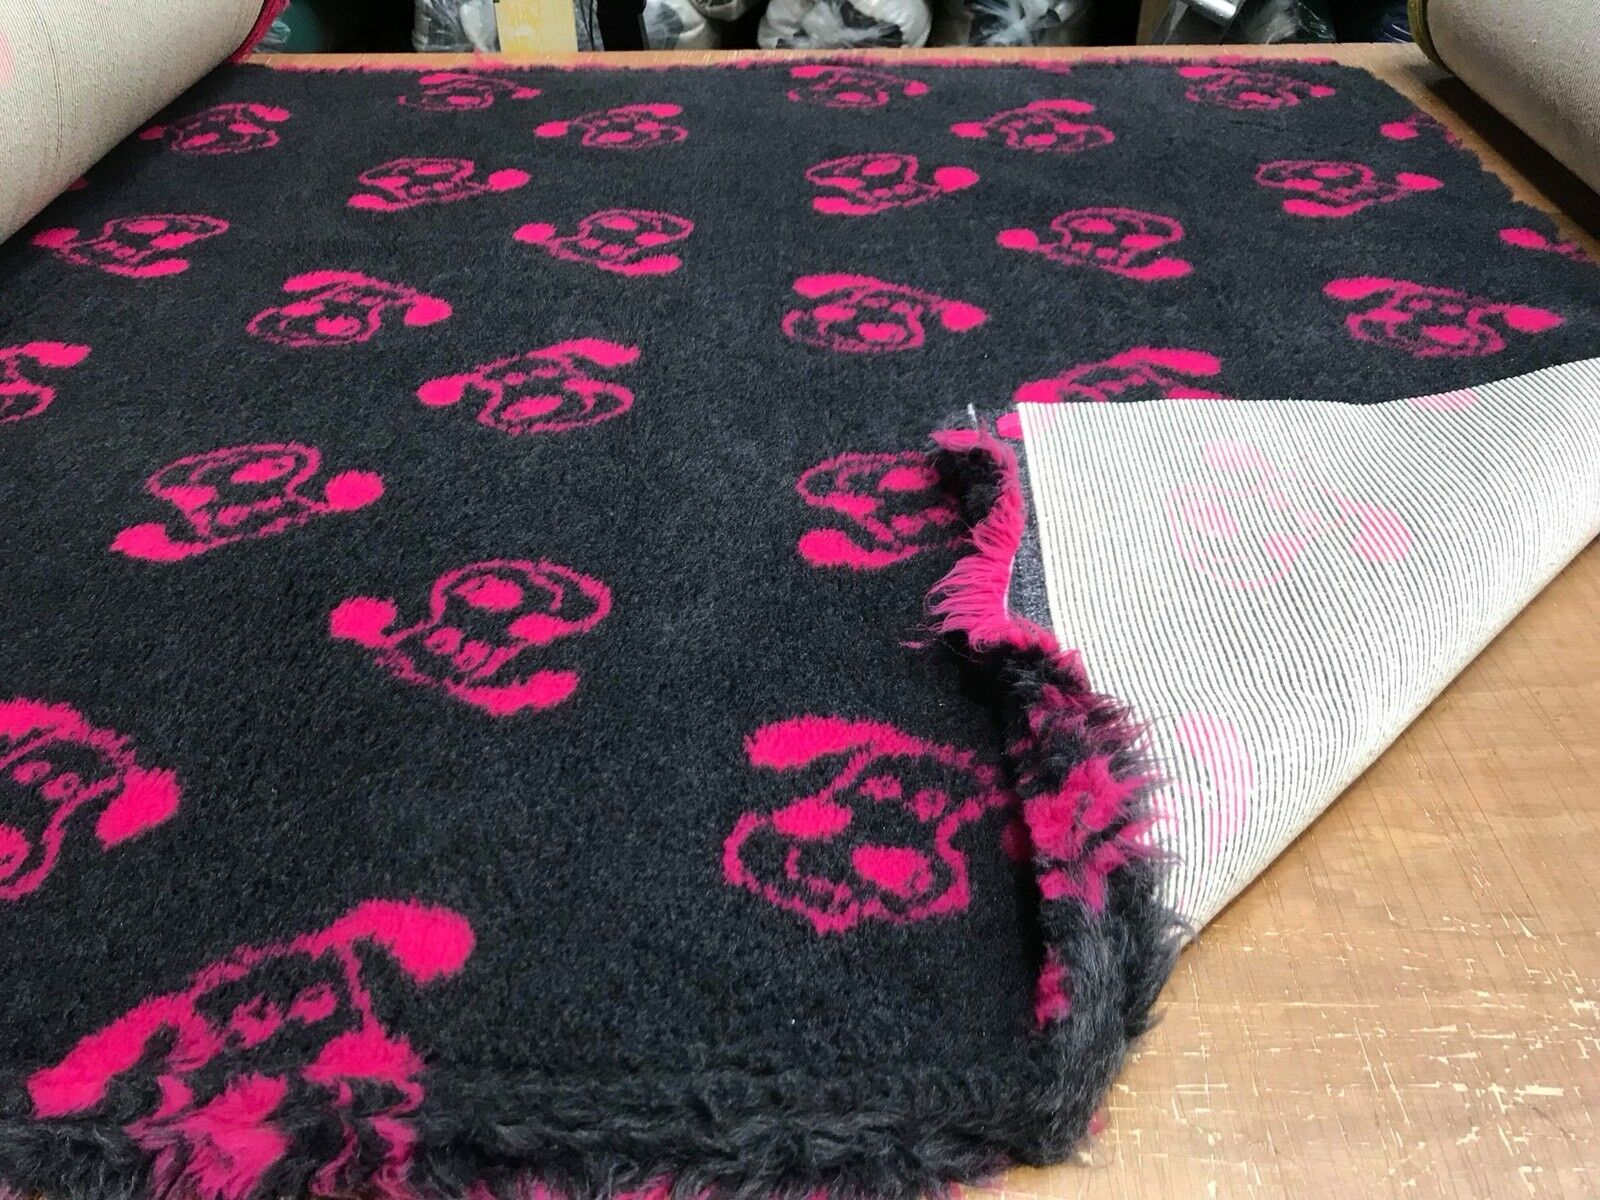 VET BEDDING NON-SLIP GREY  WITH PINK DOG FACE 2X 5MT ROLLS 1.52M